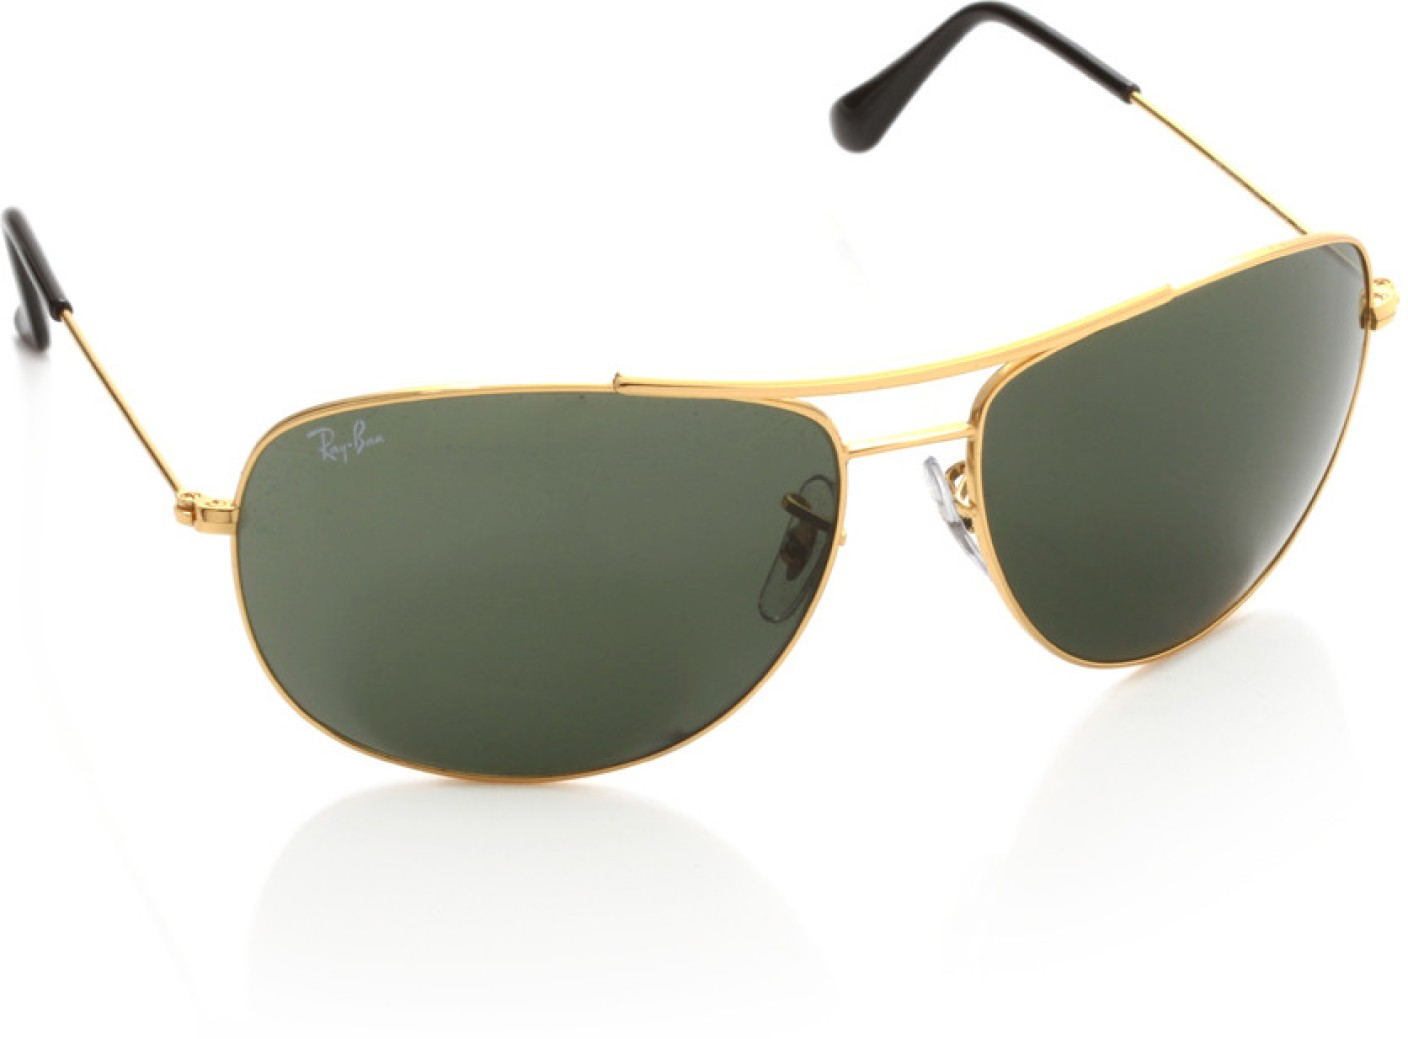 Buy Ray-Ban Oval Sunglasses Green For Men Online @ Best